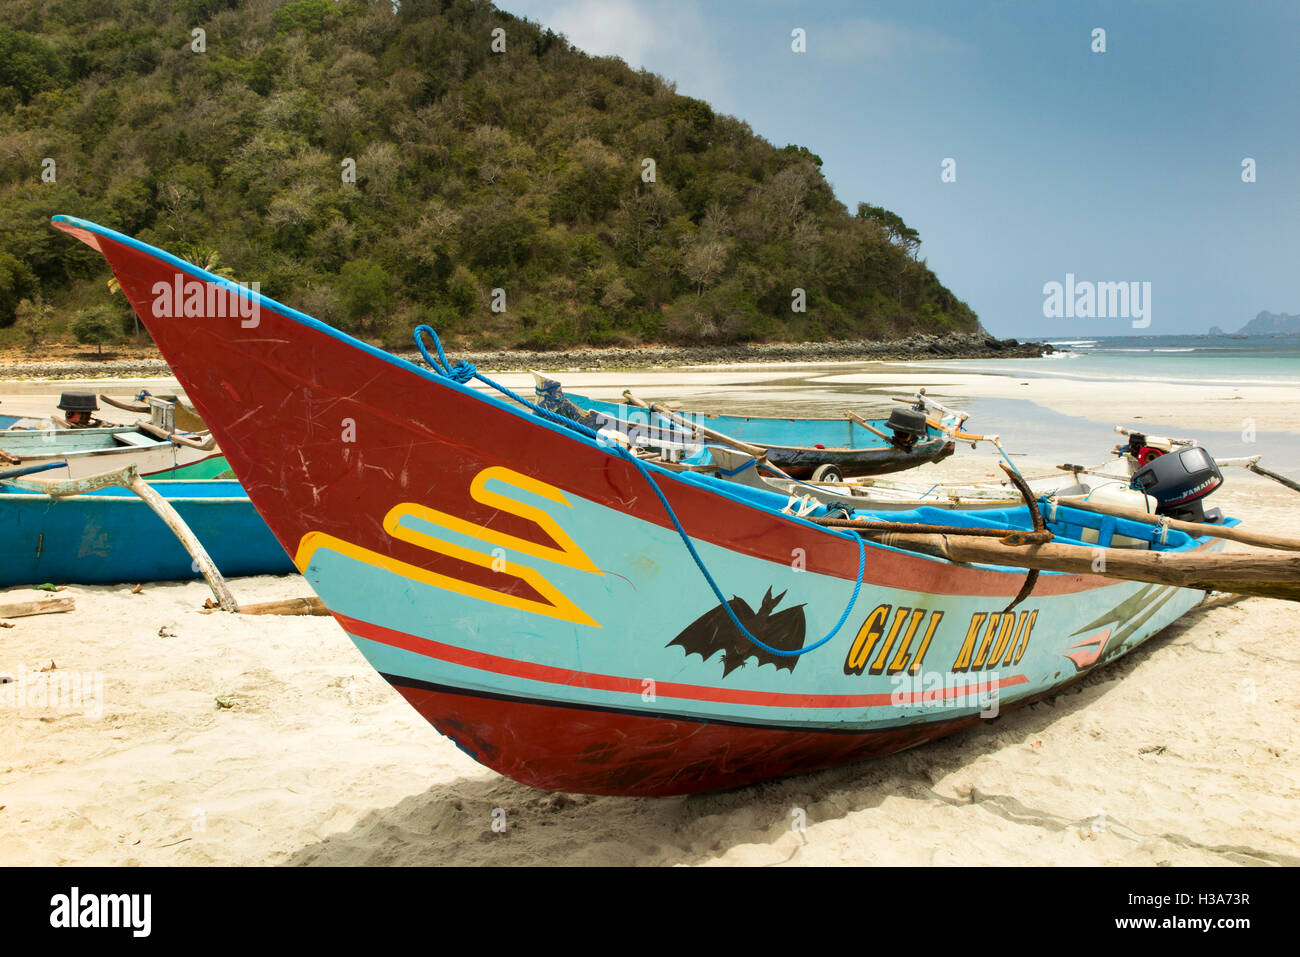 Indonesia, Lombok, Selong Blanak, beach colourfully painted fishing boat Gili Kedis with bat symbol - Stock Image